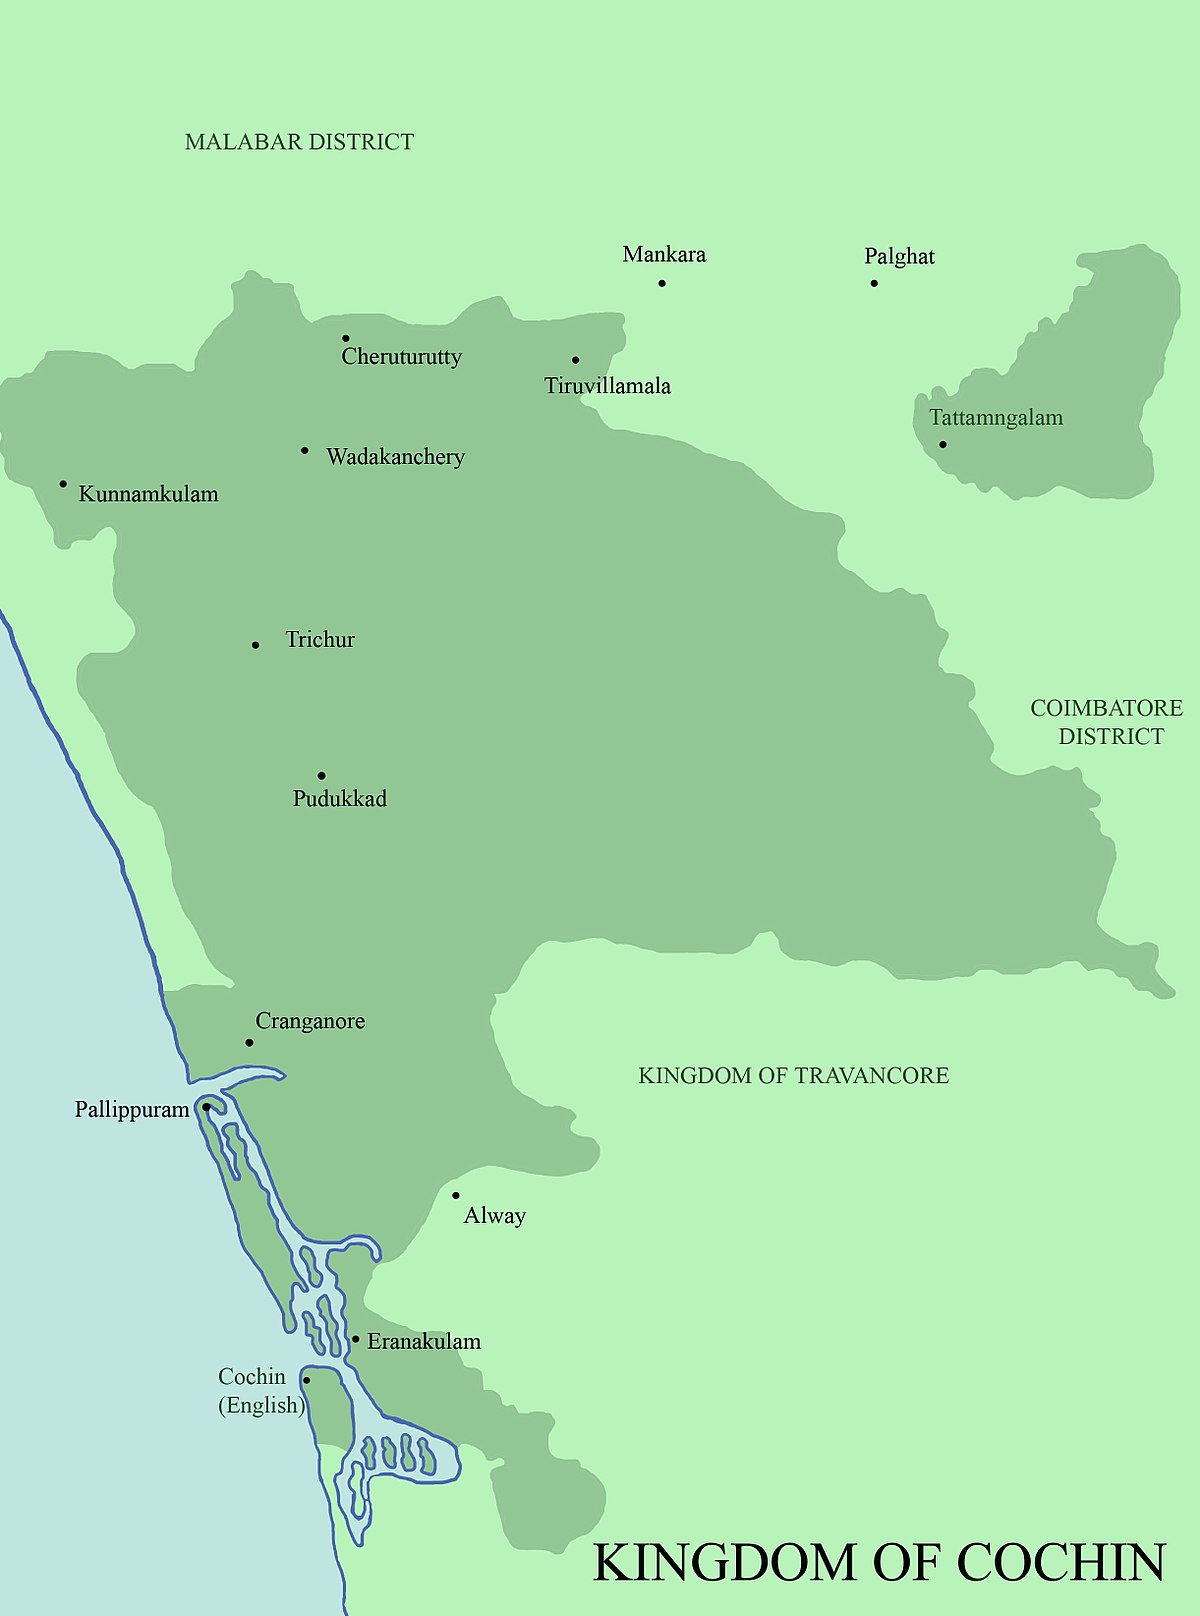 Kingdom of Cochin - Wikipedia